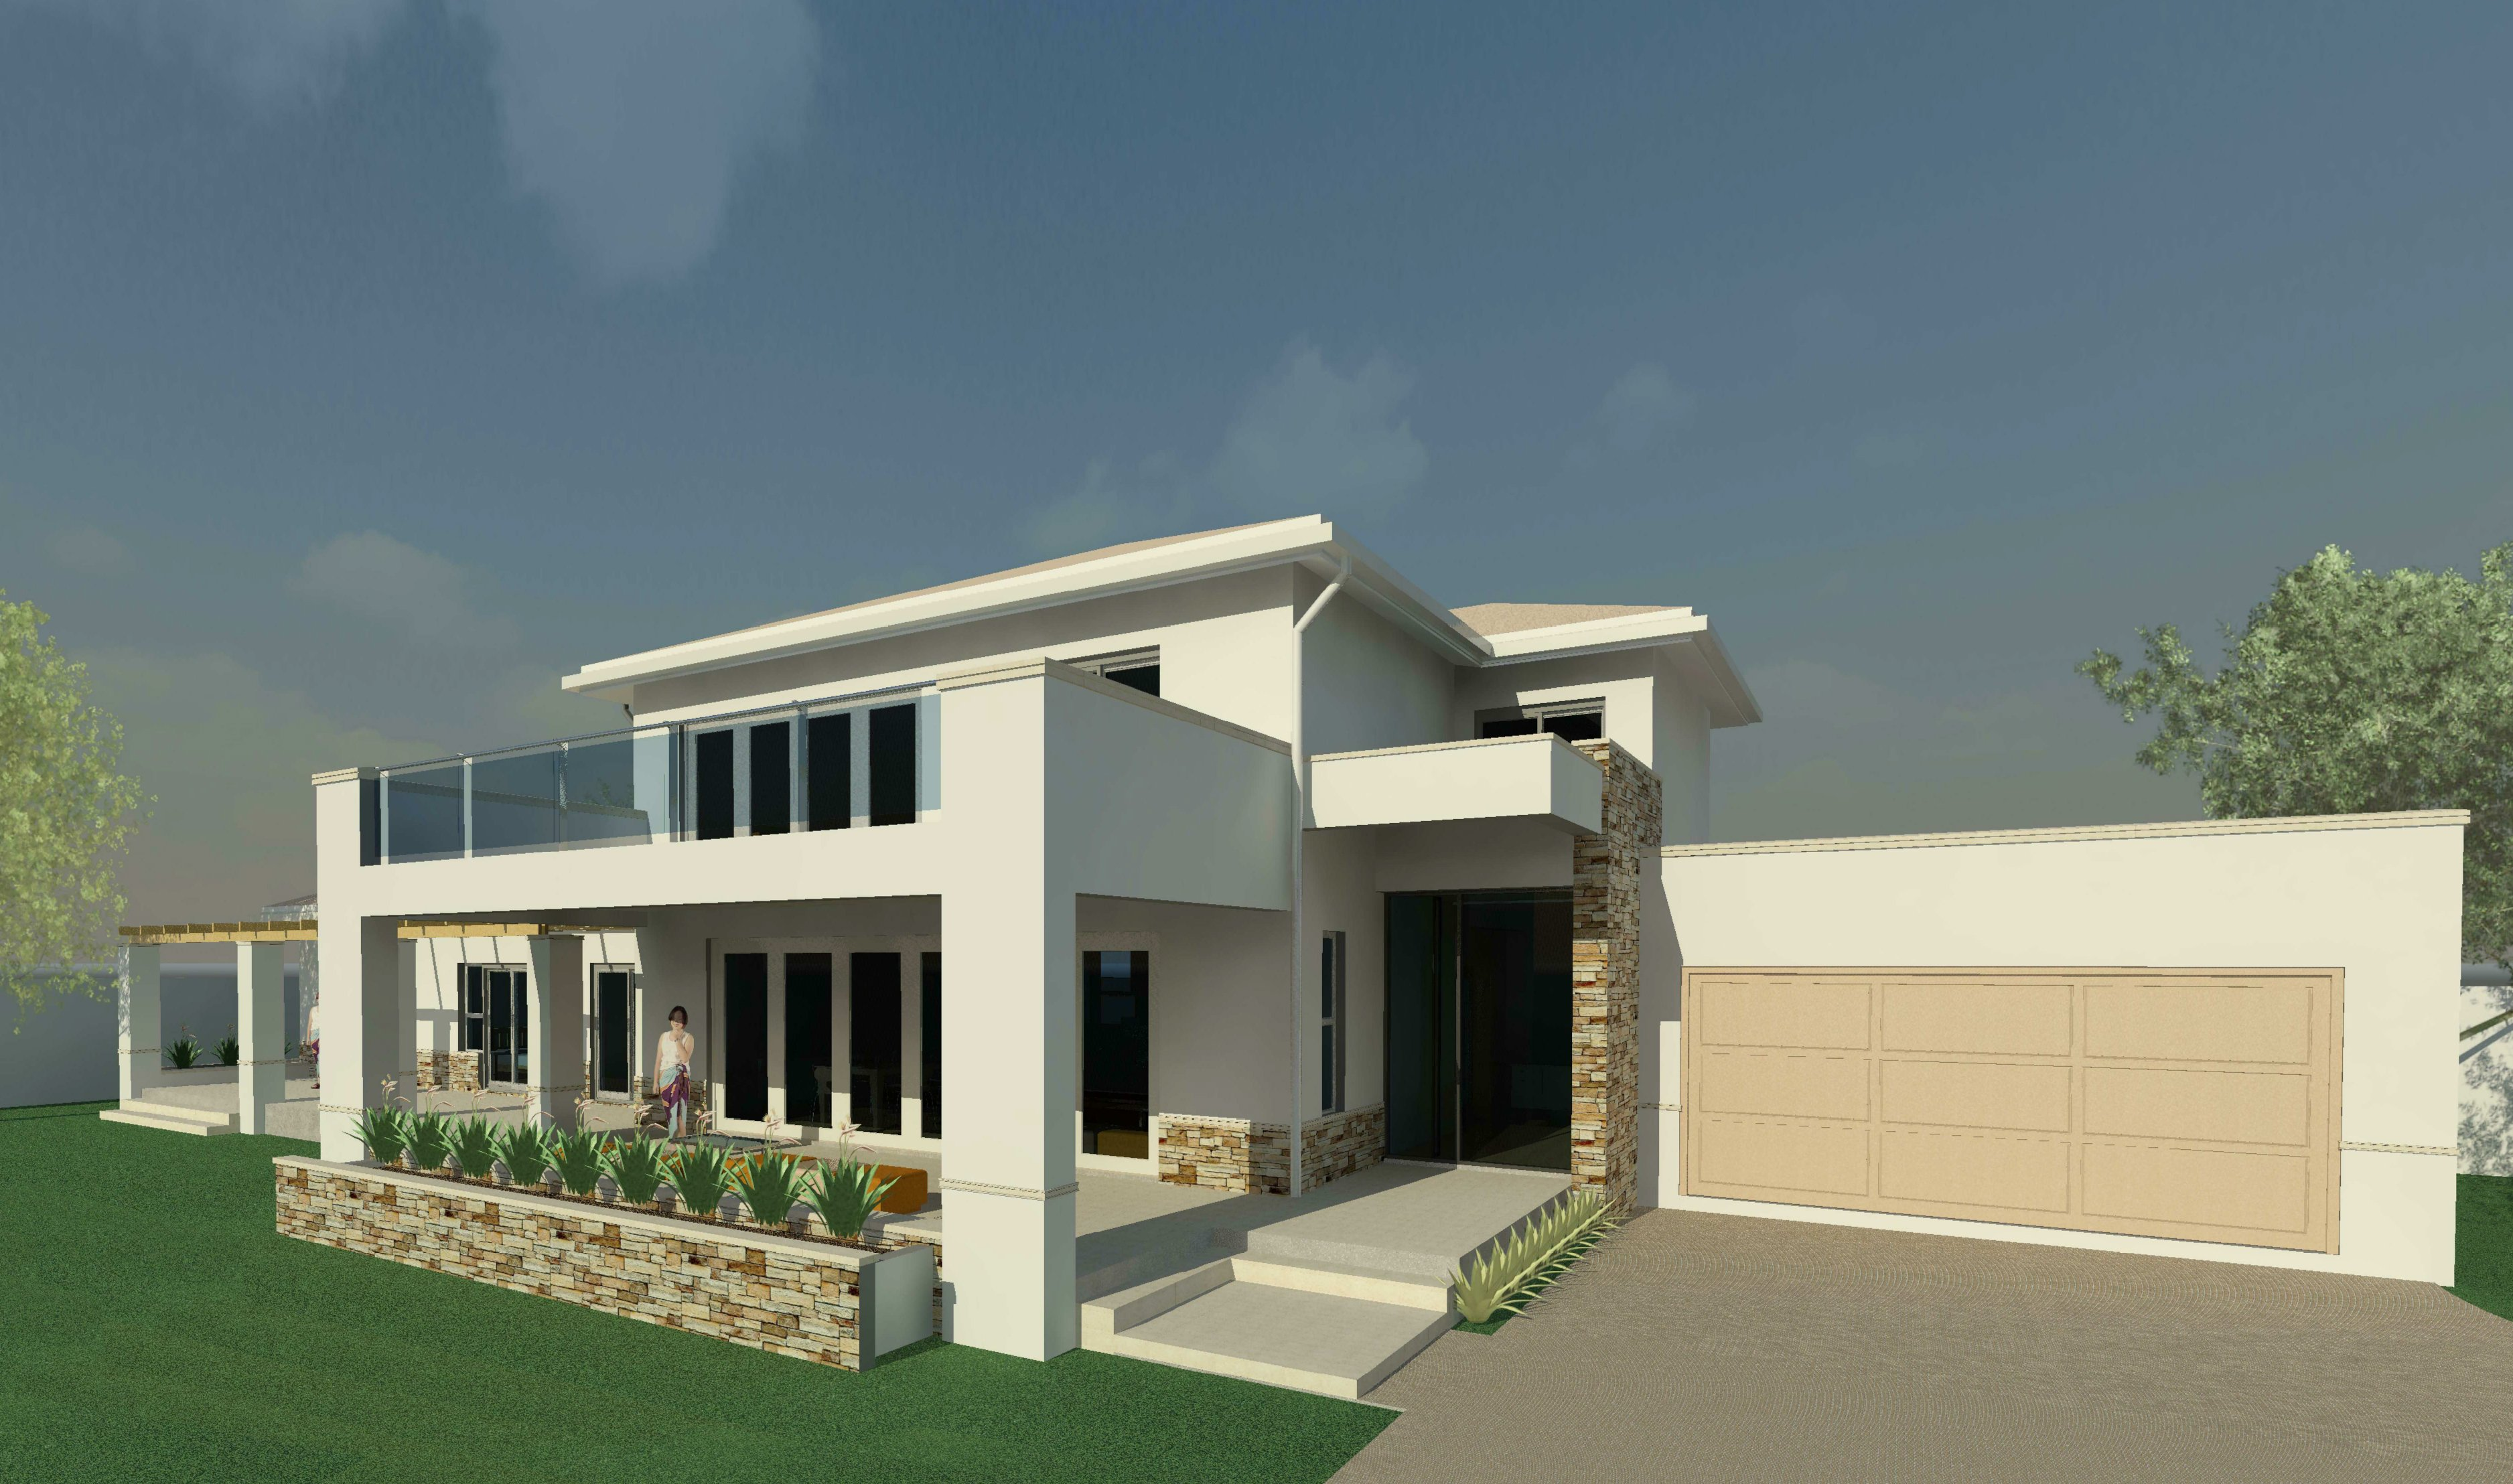 architectural 3D rendering showing front of house and garage